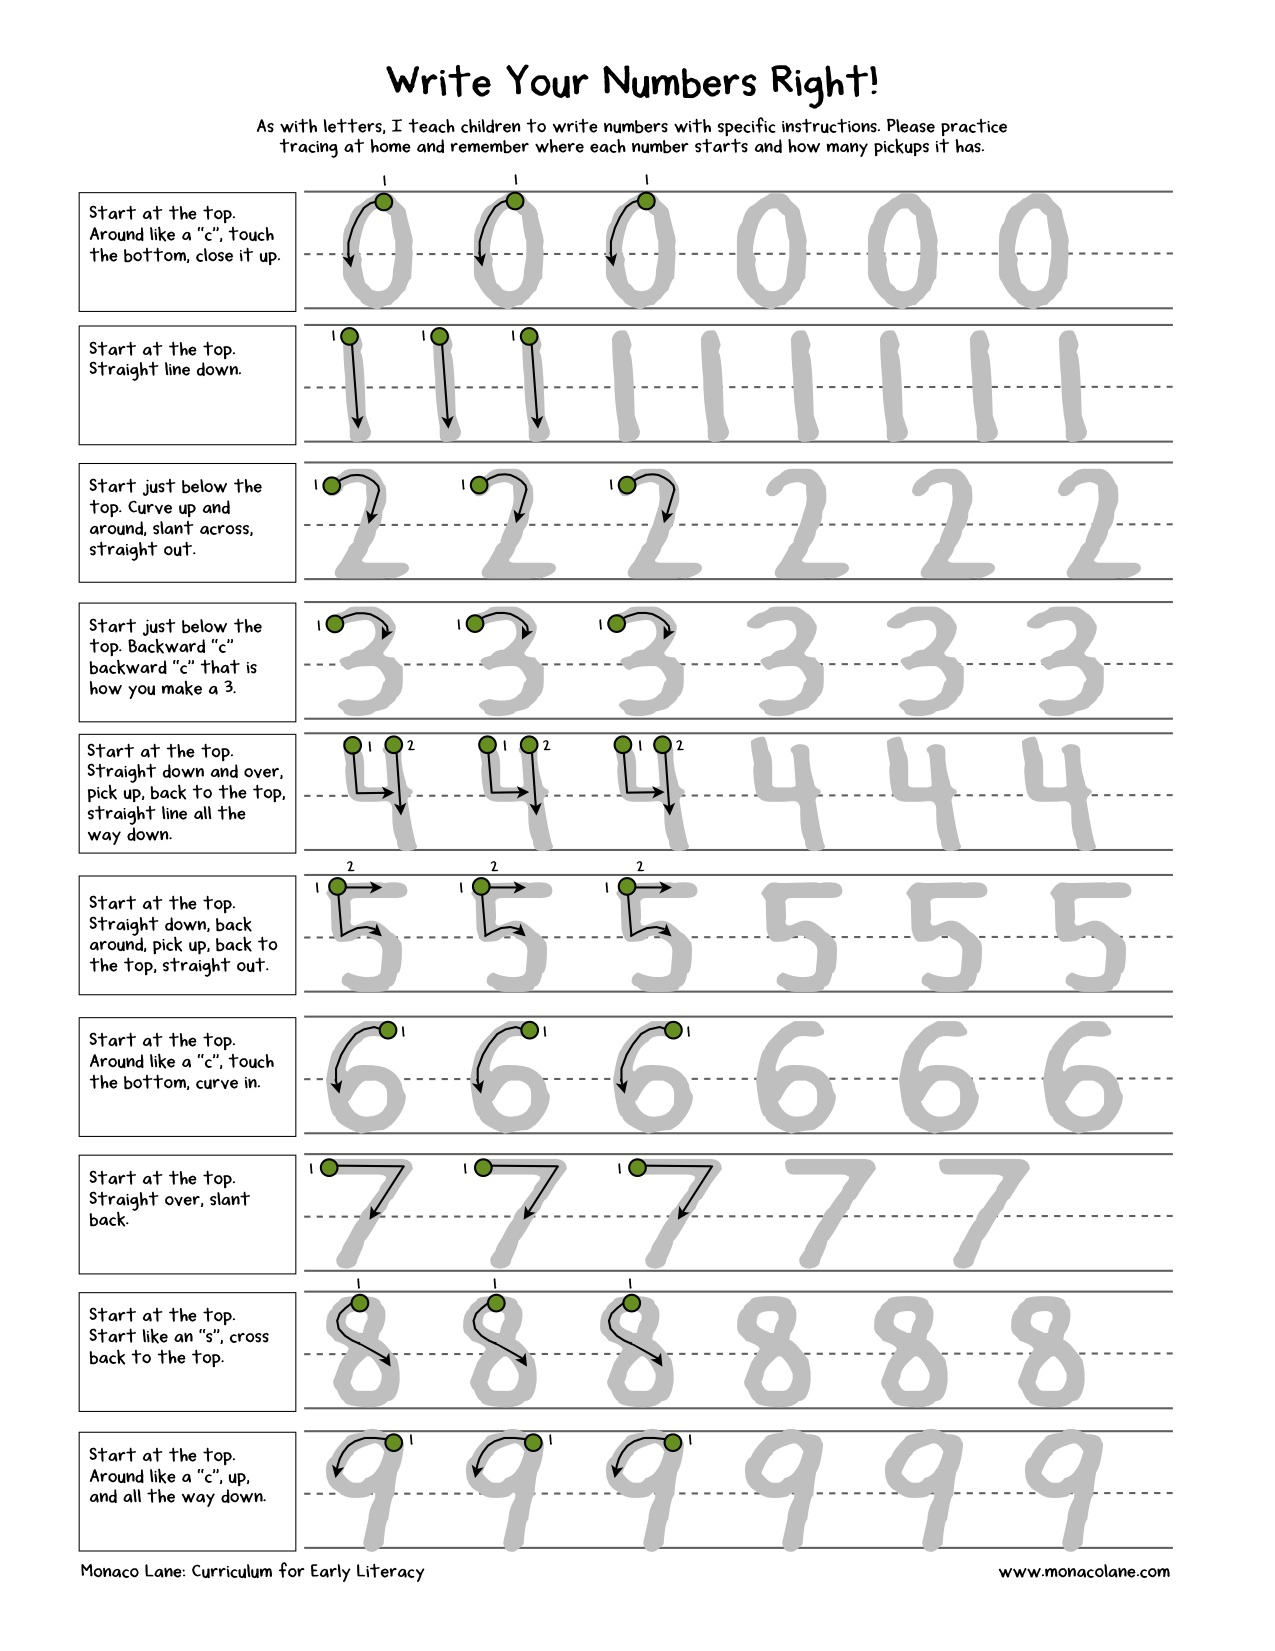 Written Numbers Pictures To Pin